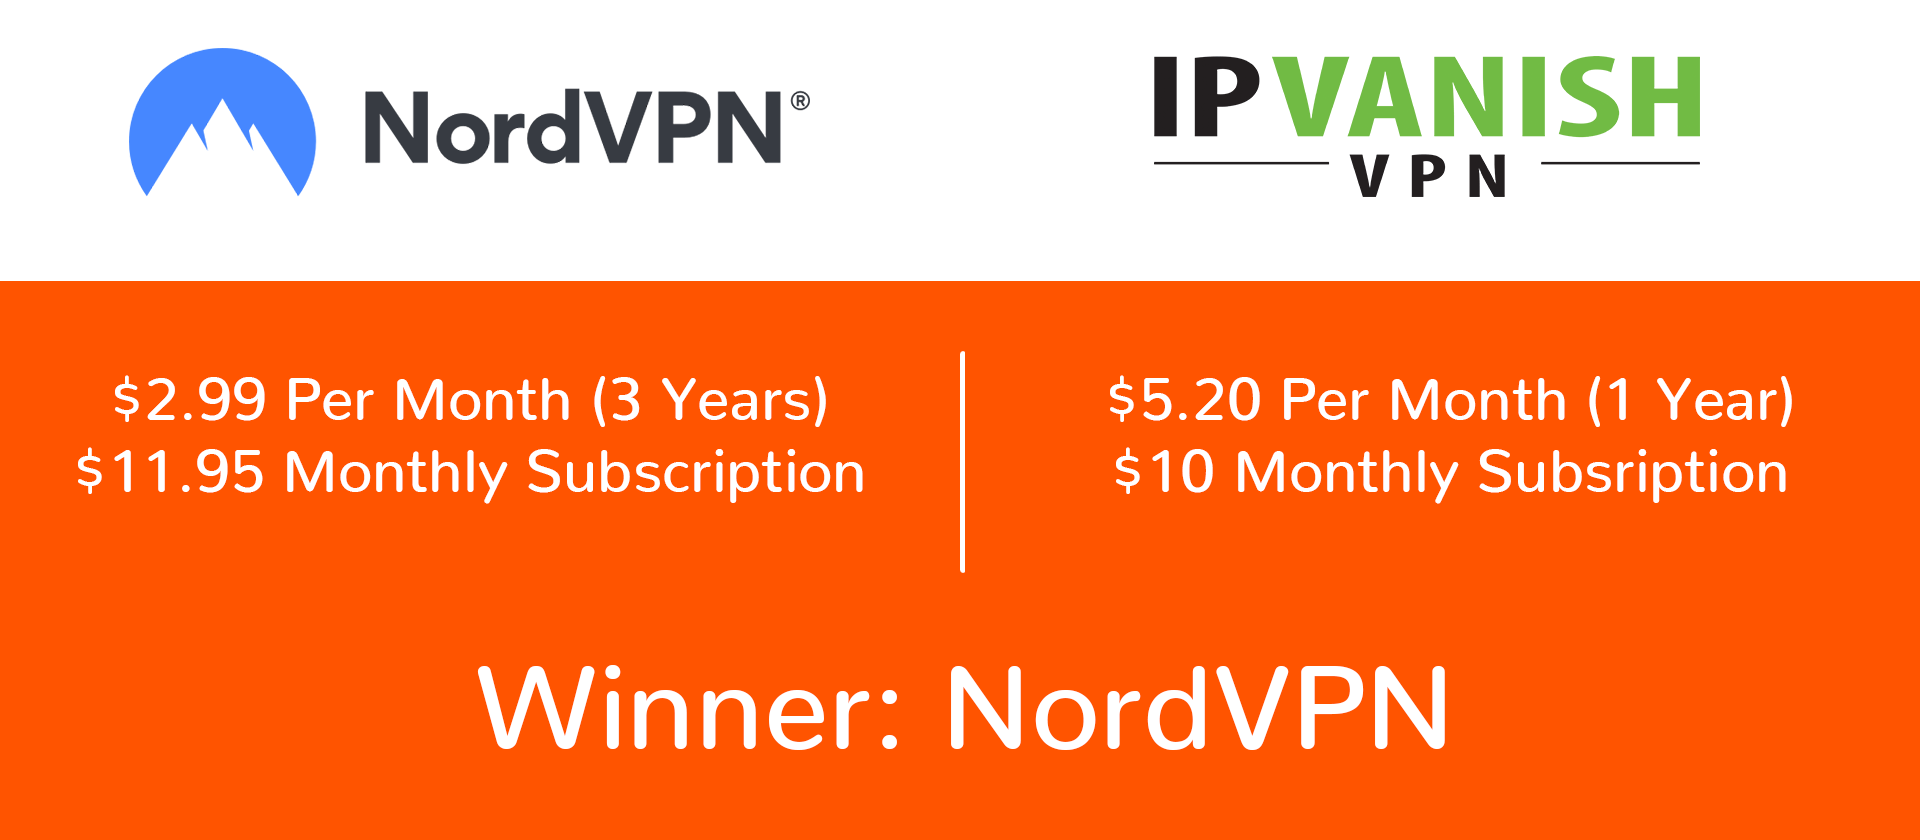 NordVPN vs IPVanish pricing